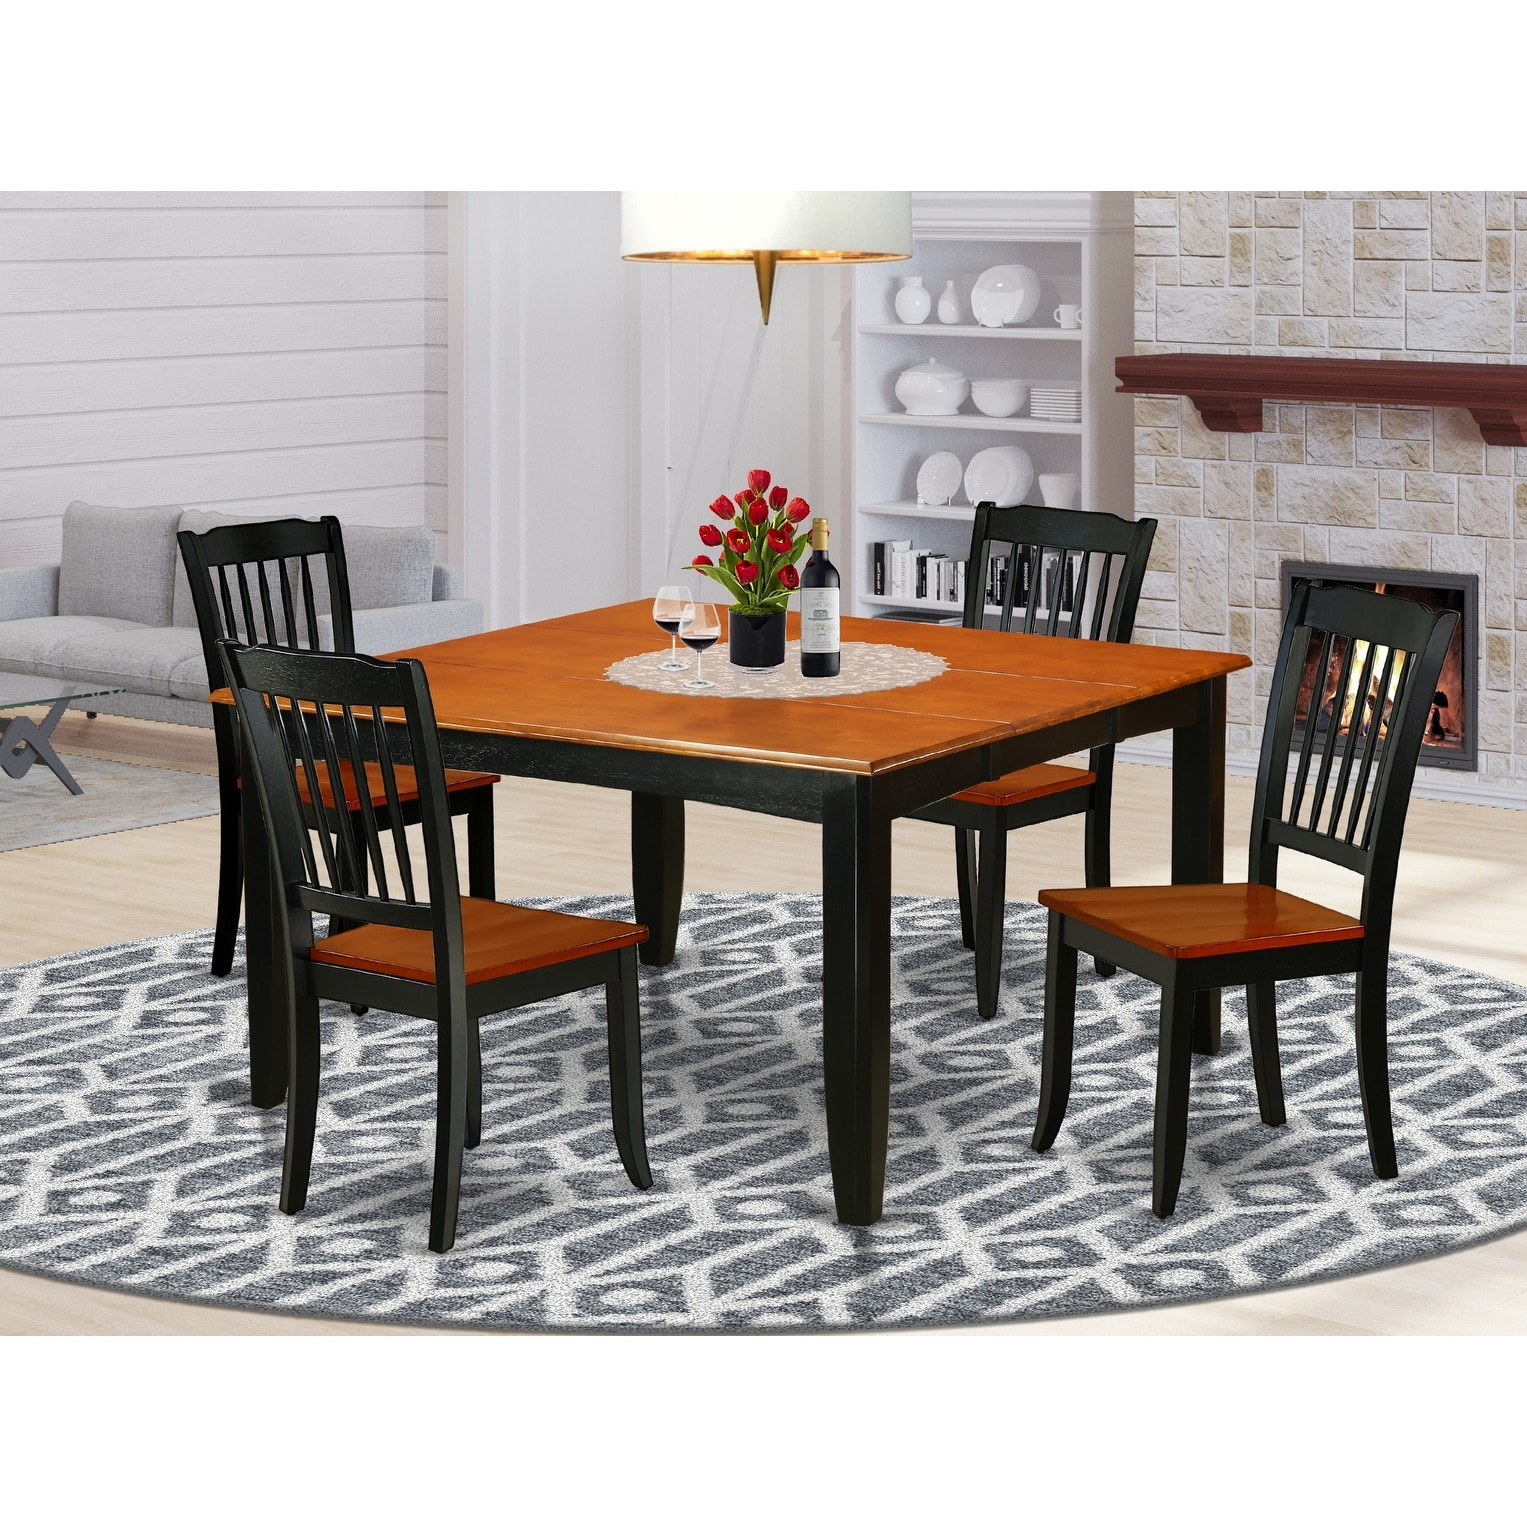 Shop Square 36 54 Inch Table With 18 Leaf And 4 Vertical Slatted Chairs Number Of Chairs Option Overstock 28480013 9 Piece Sets 8